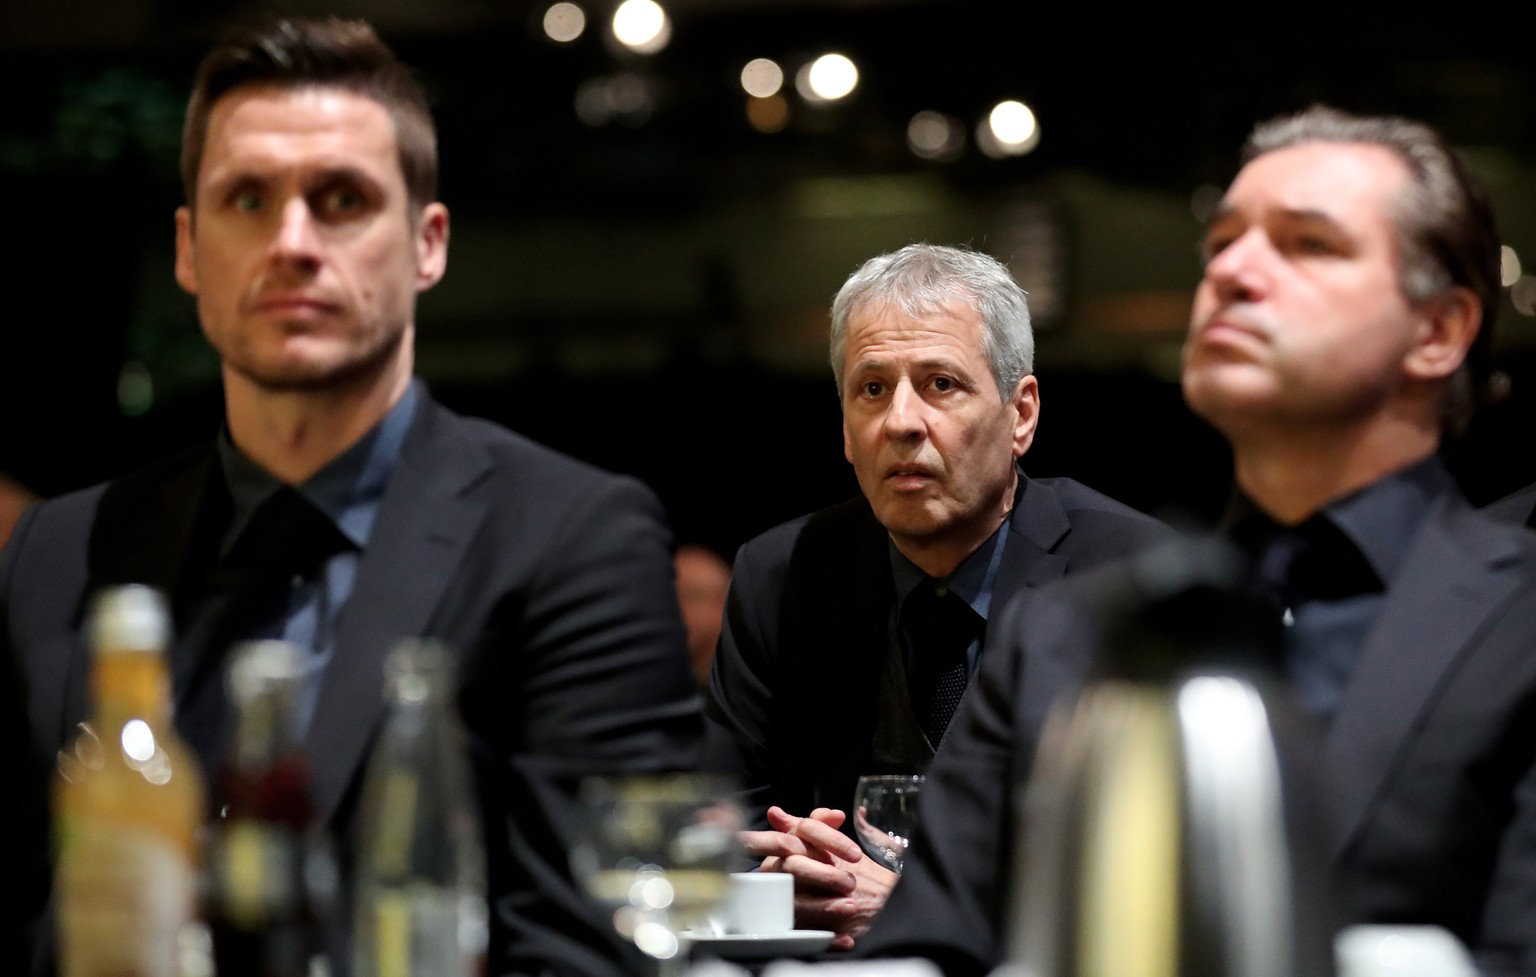 epa08021763 (L-R) Dortmund's head of the licensing player department, Sebastian Kehl, Dortmund's head coach Lucien Favre and Dortmund's sports director Michael Zorc attend the Annual General Meeting of Borussia Dortmund at the Westfalenhalle Dortmund in Dortmund, Germany, 24 November 2019.  EPA/FRIEDEMANN VOGEL